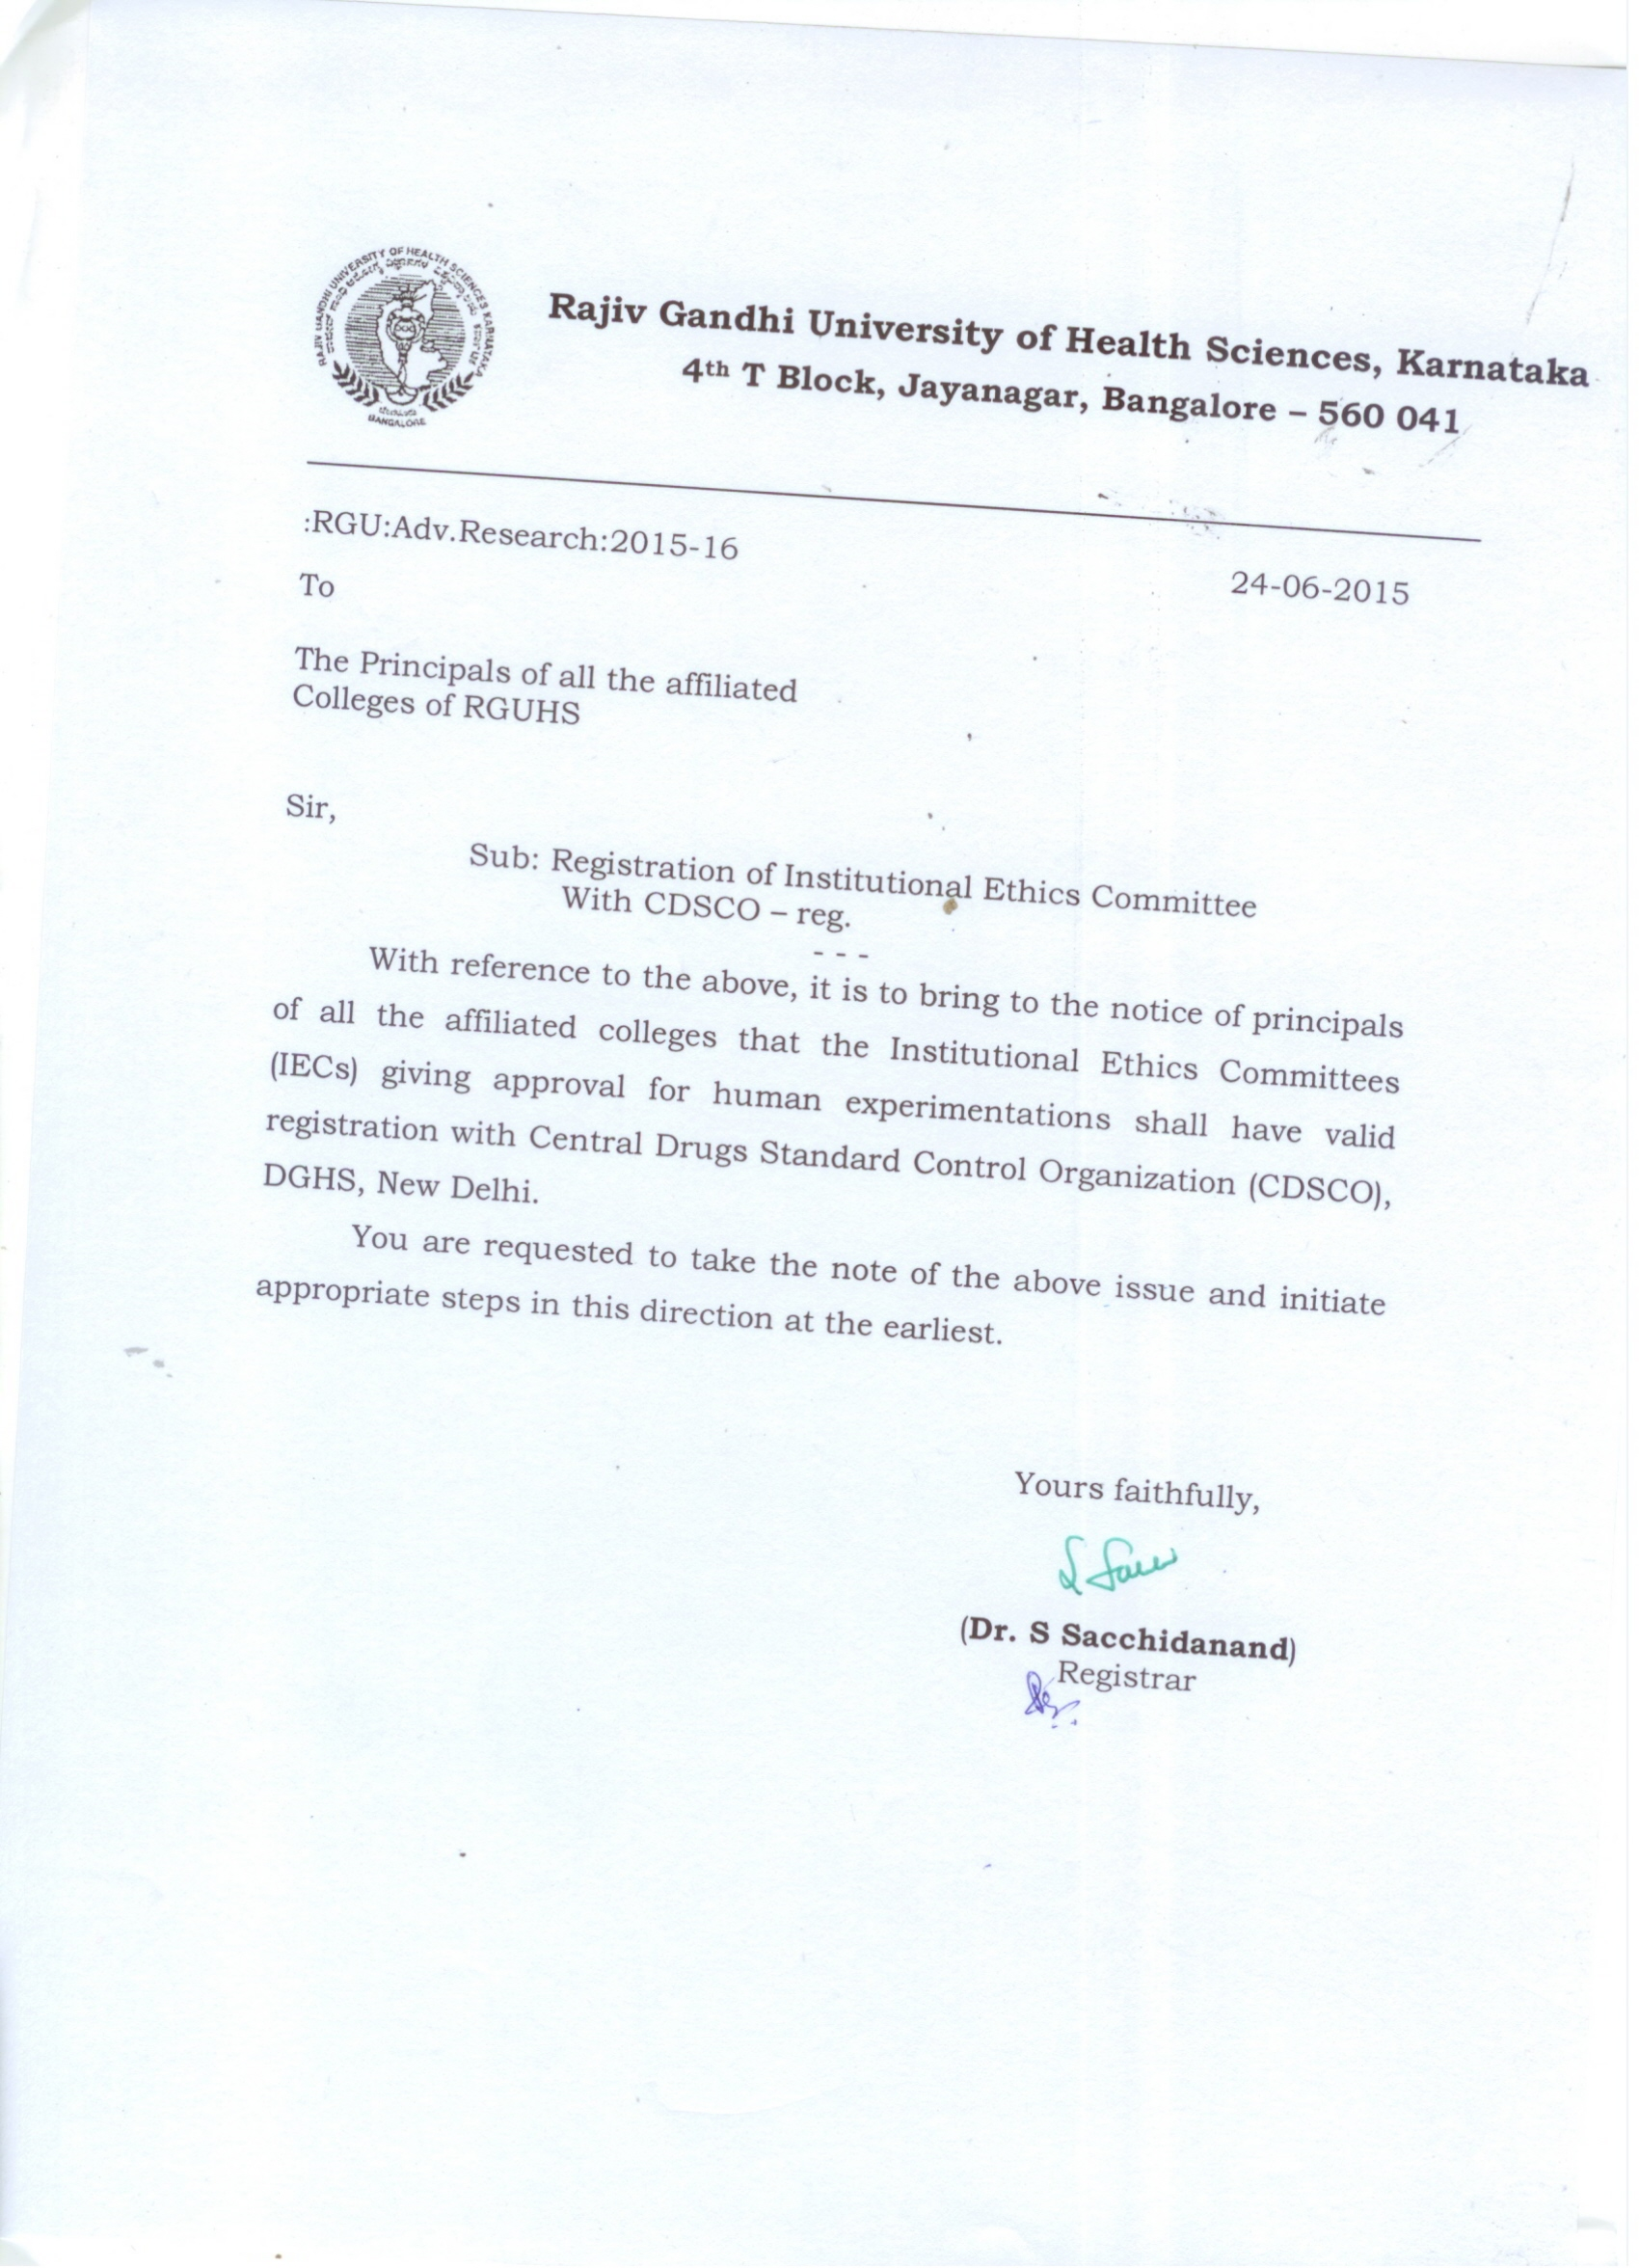 Circular to medical colleges regscog awareness programme on cpcsea guidelines for animal experimentation scheduled on 22nd may 2015 at rguhs inviting application forms for advance research stopboris Images